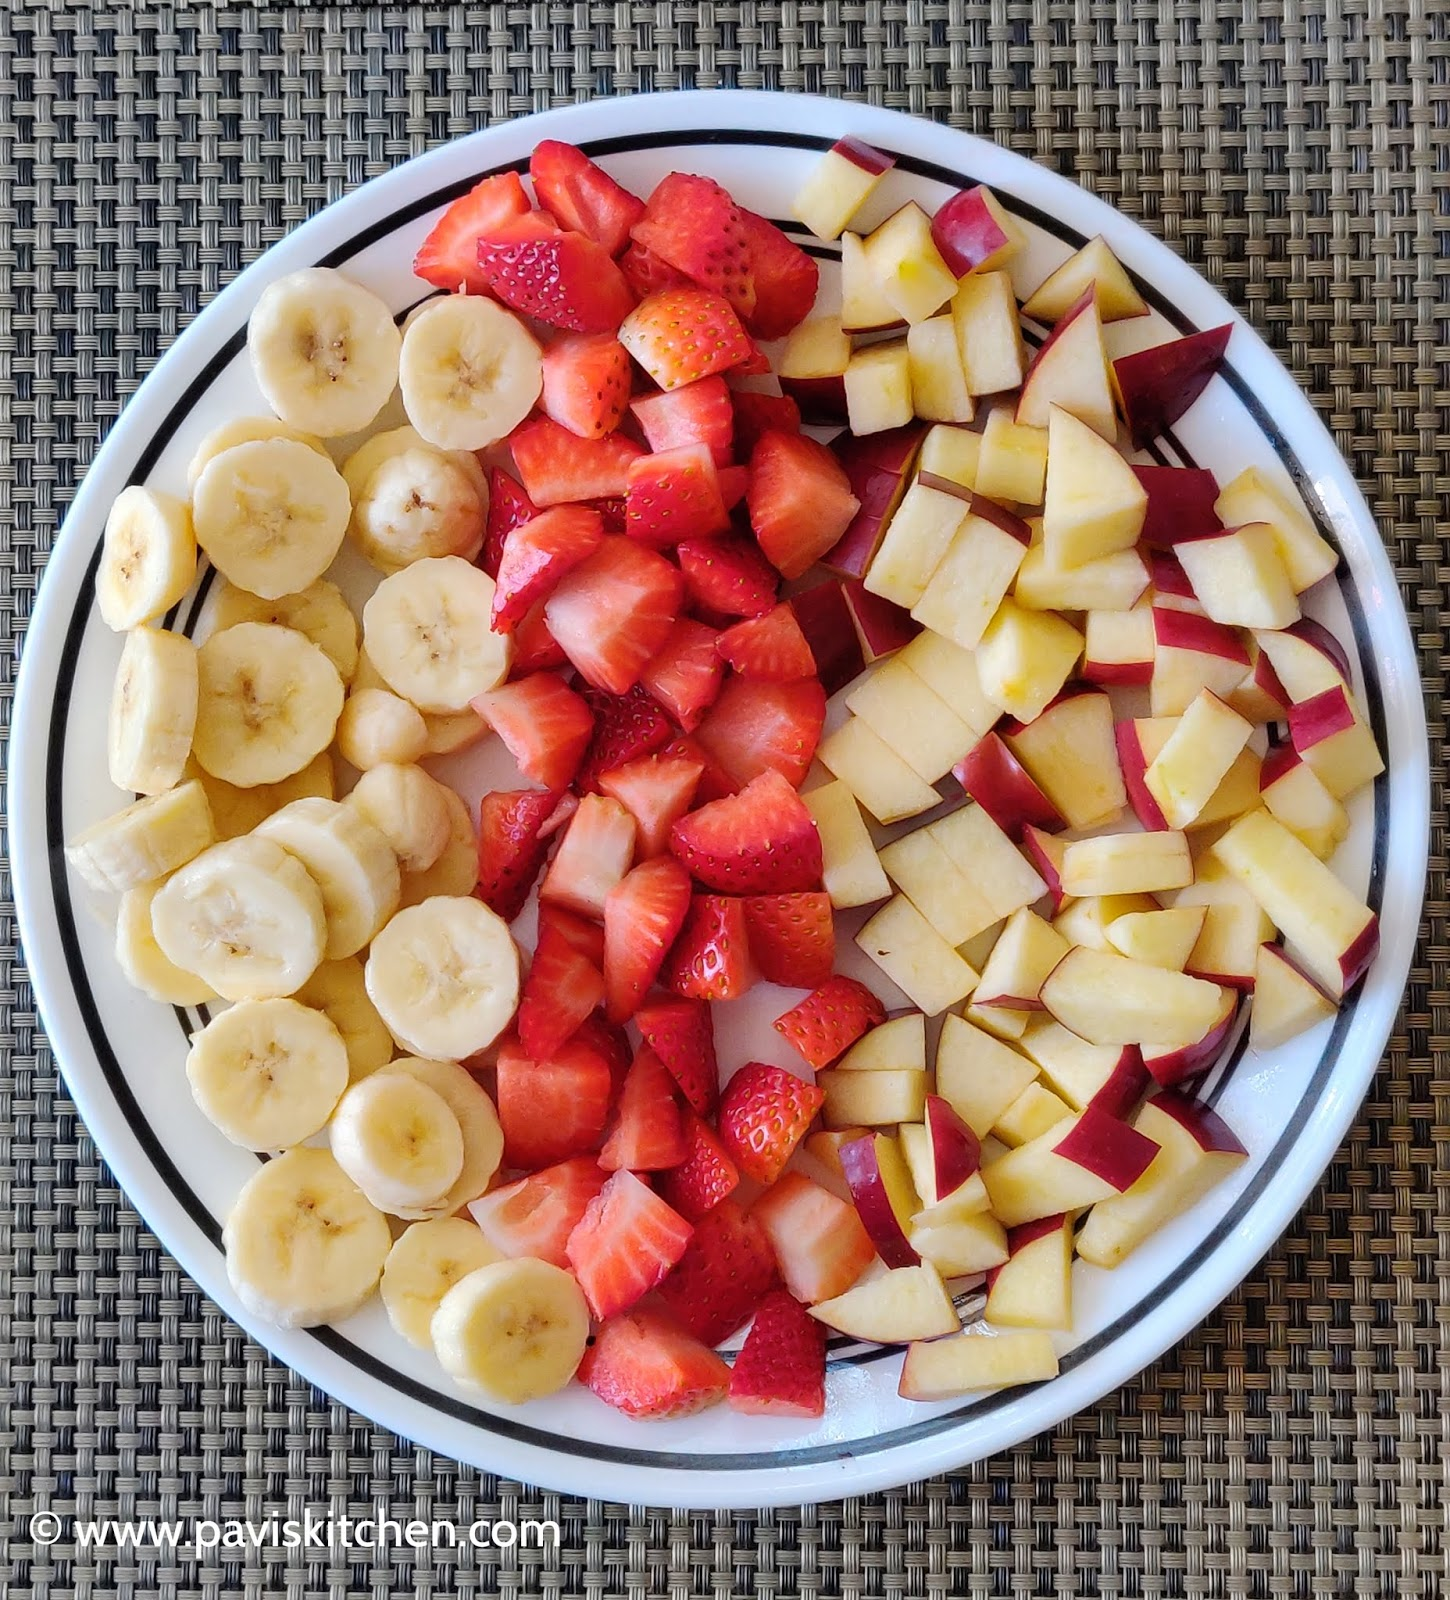 Healthy Fruit and Nut Platter Recipe | Fruit Tray | Fruit and Nut Salad